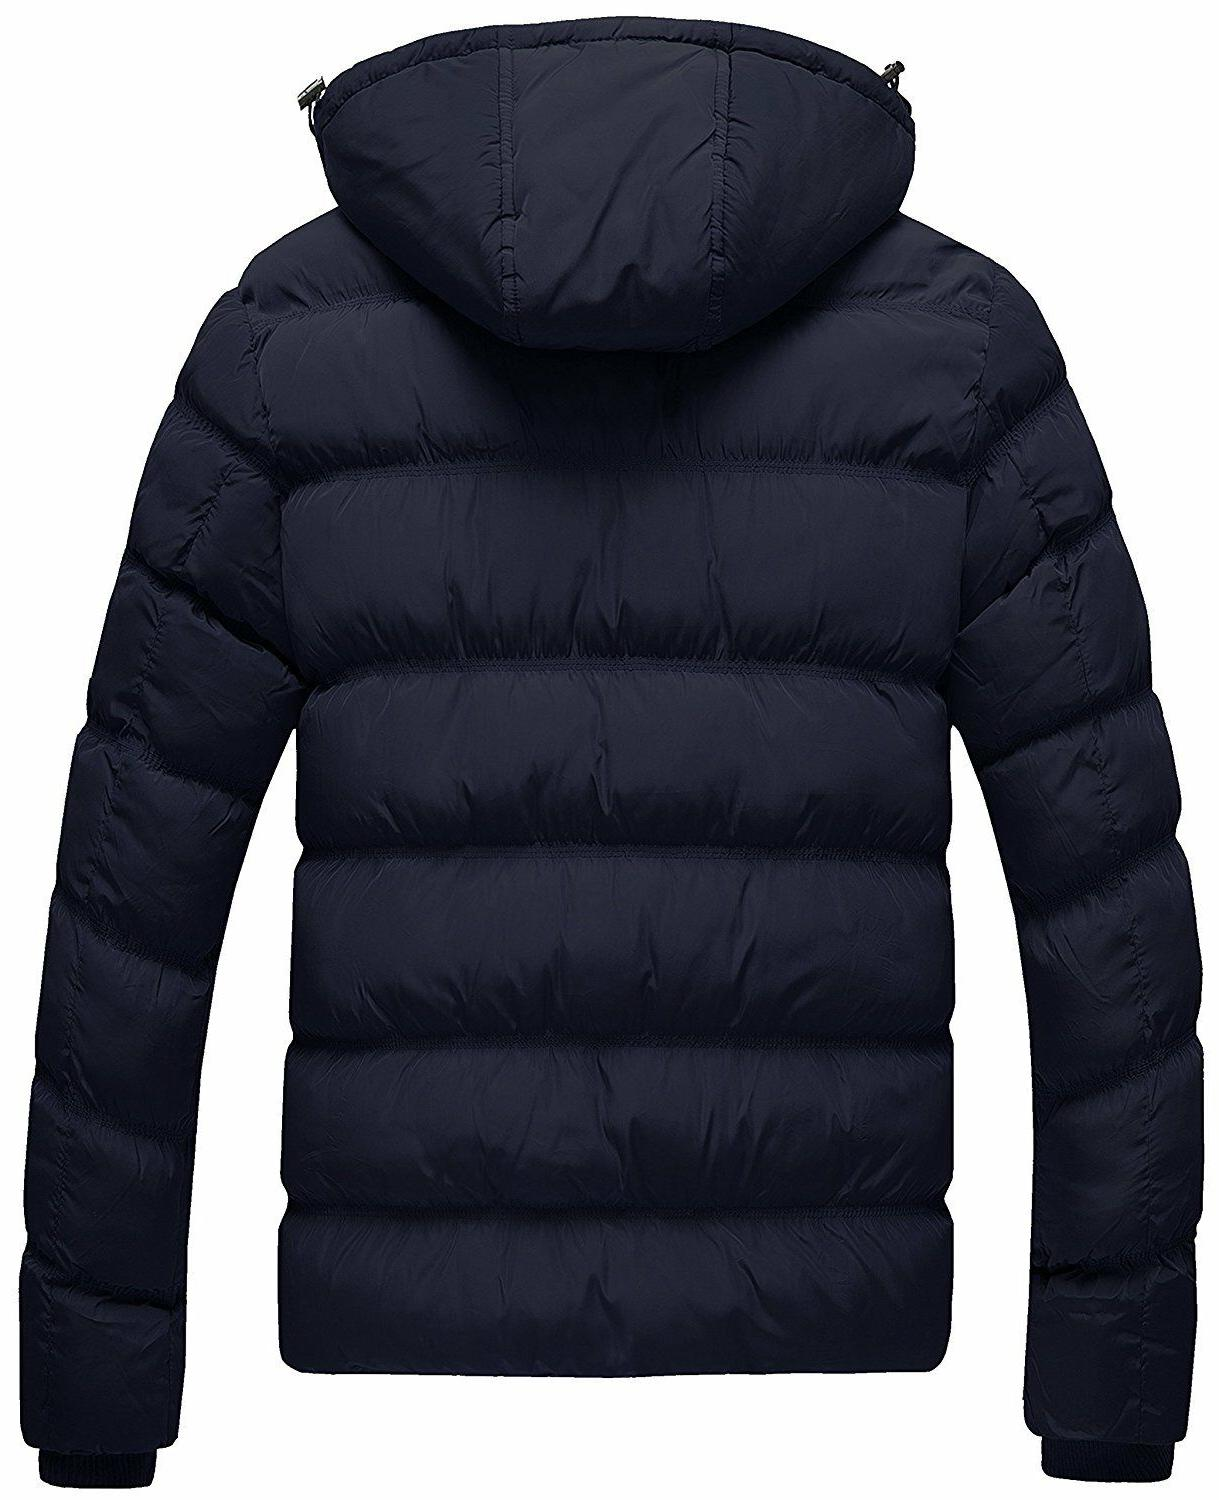 Wantdo Men's Cotton Coat Jacket with Removable Hood